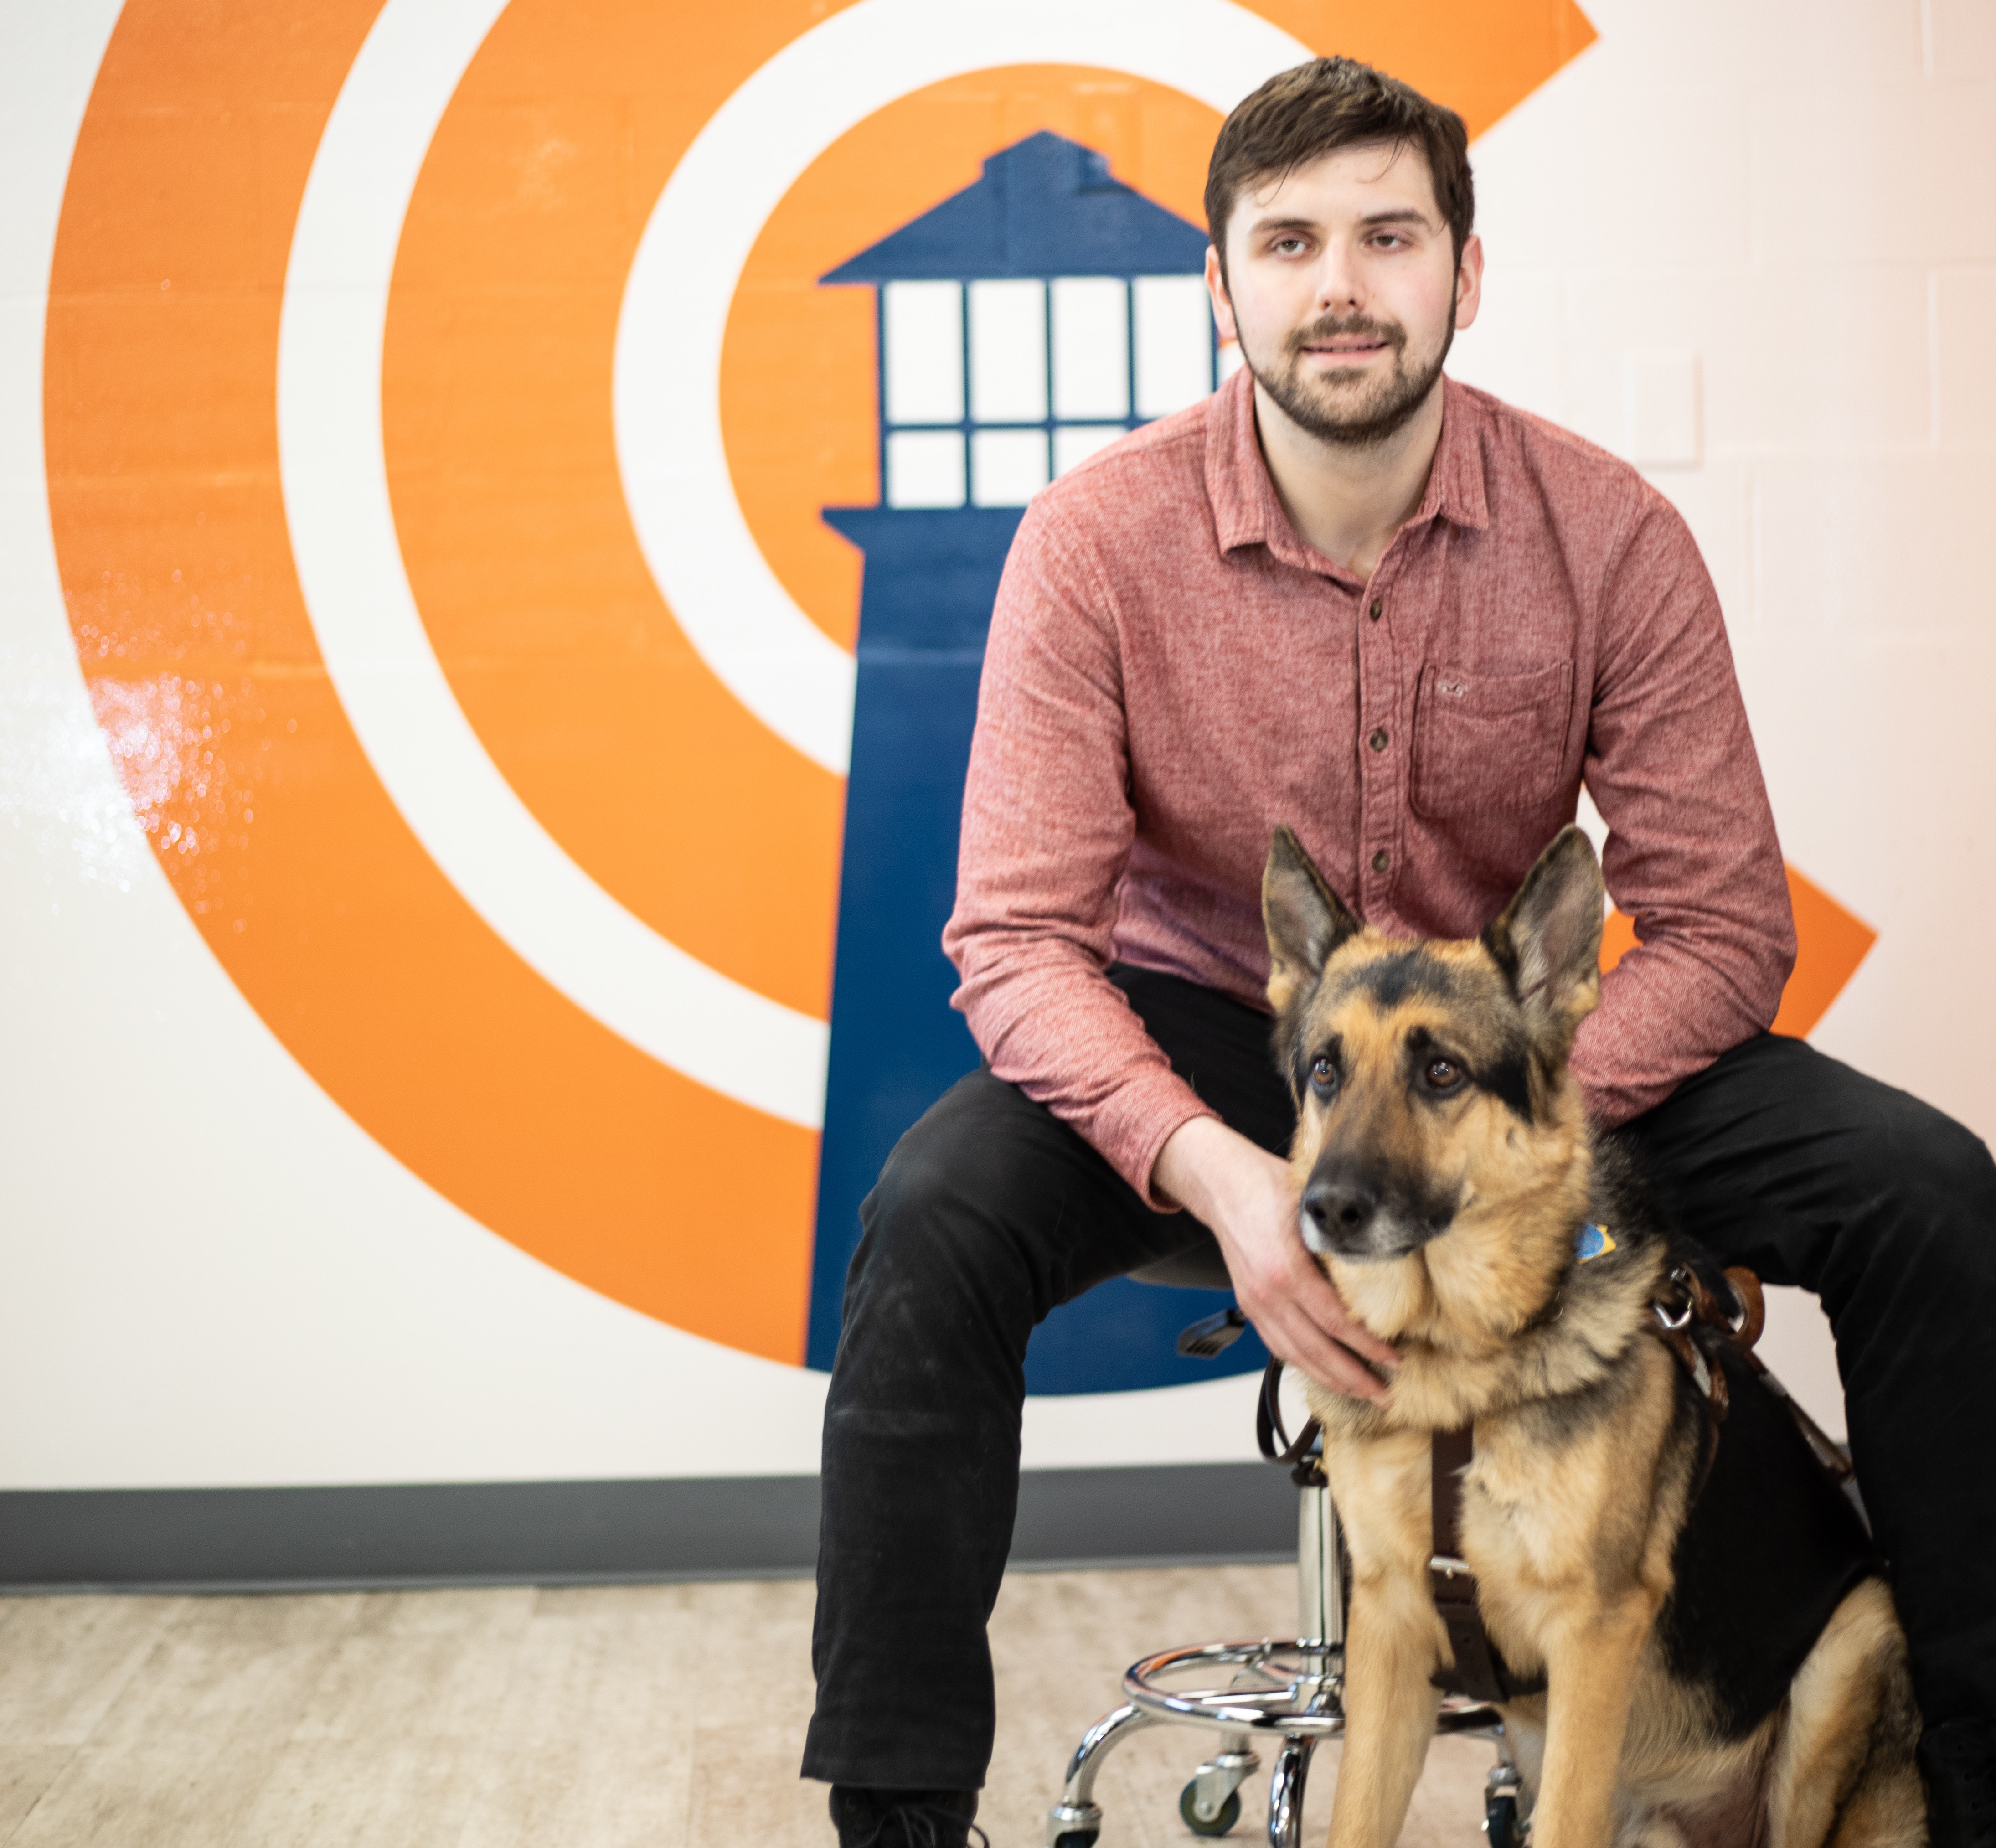 Ben and his guide dog, sammie, sitting in front of a wall with the chicago lighthouse logo